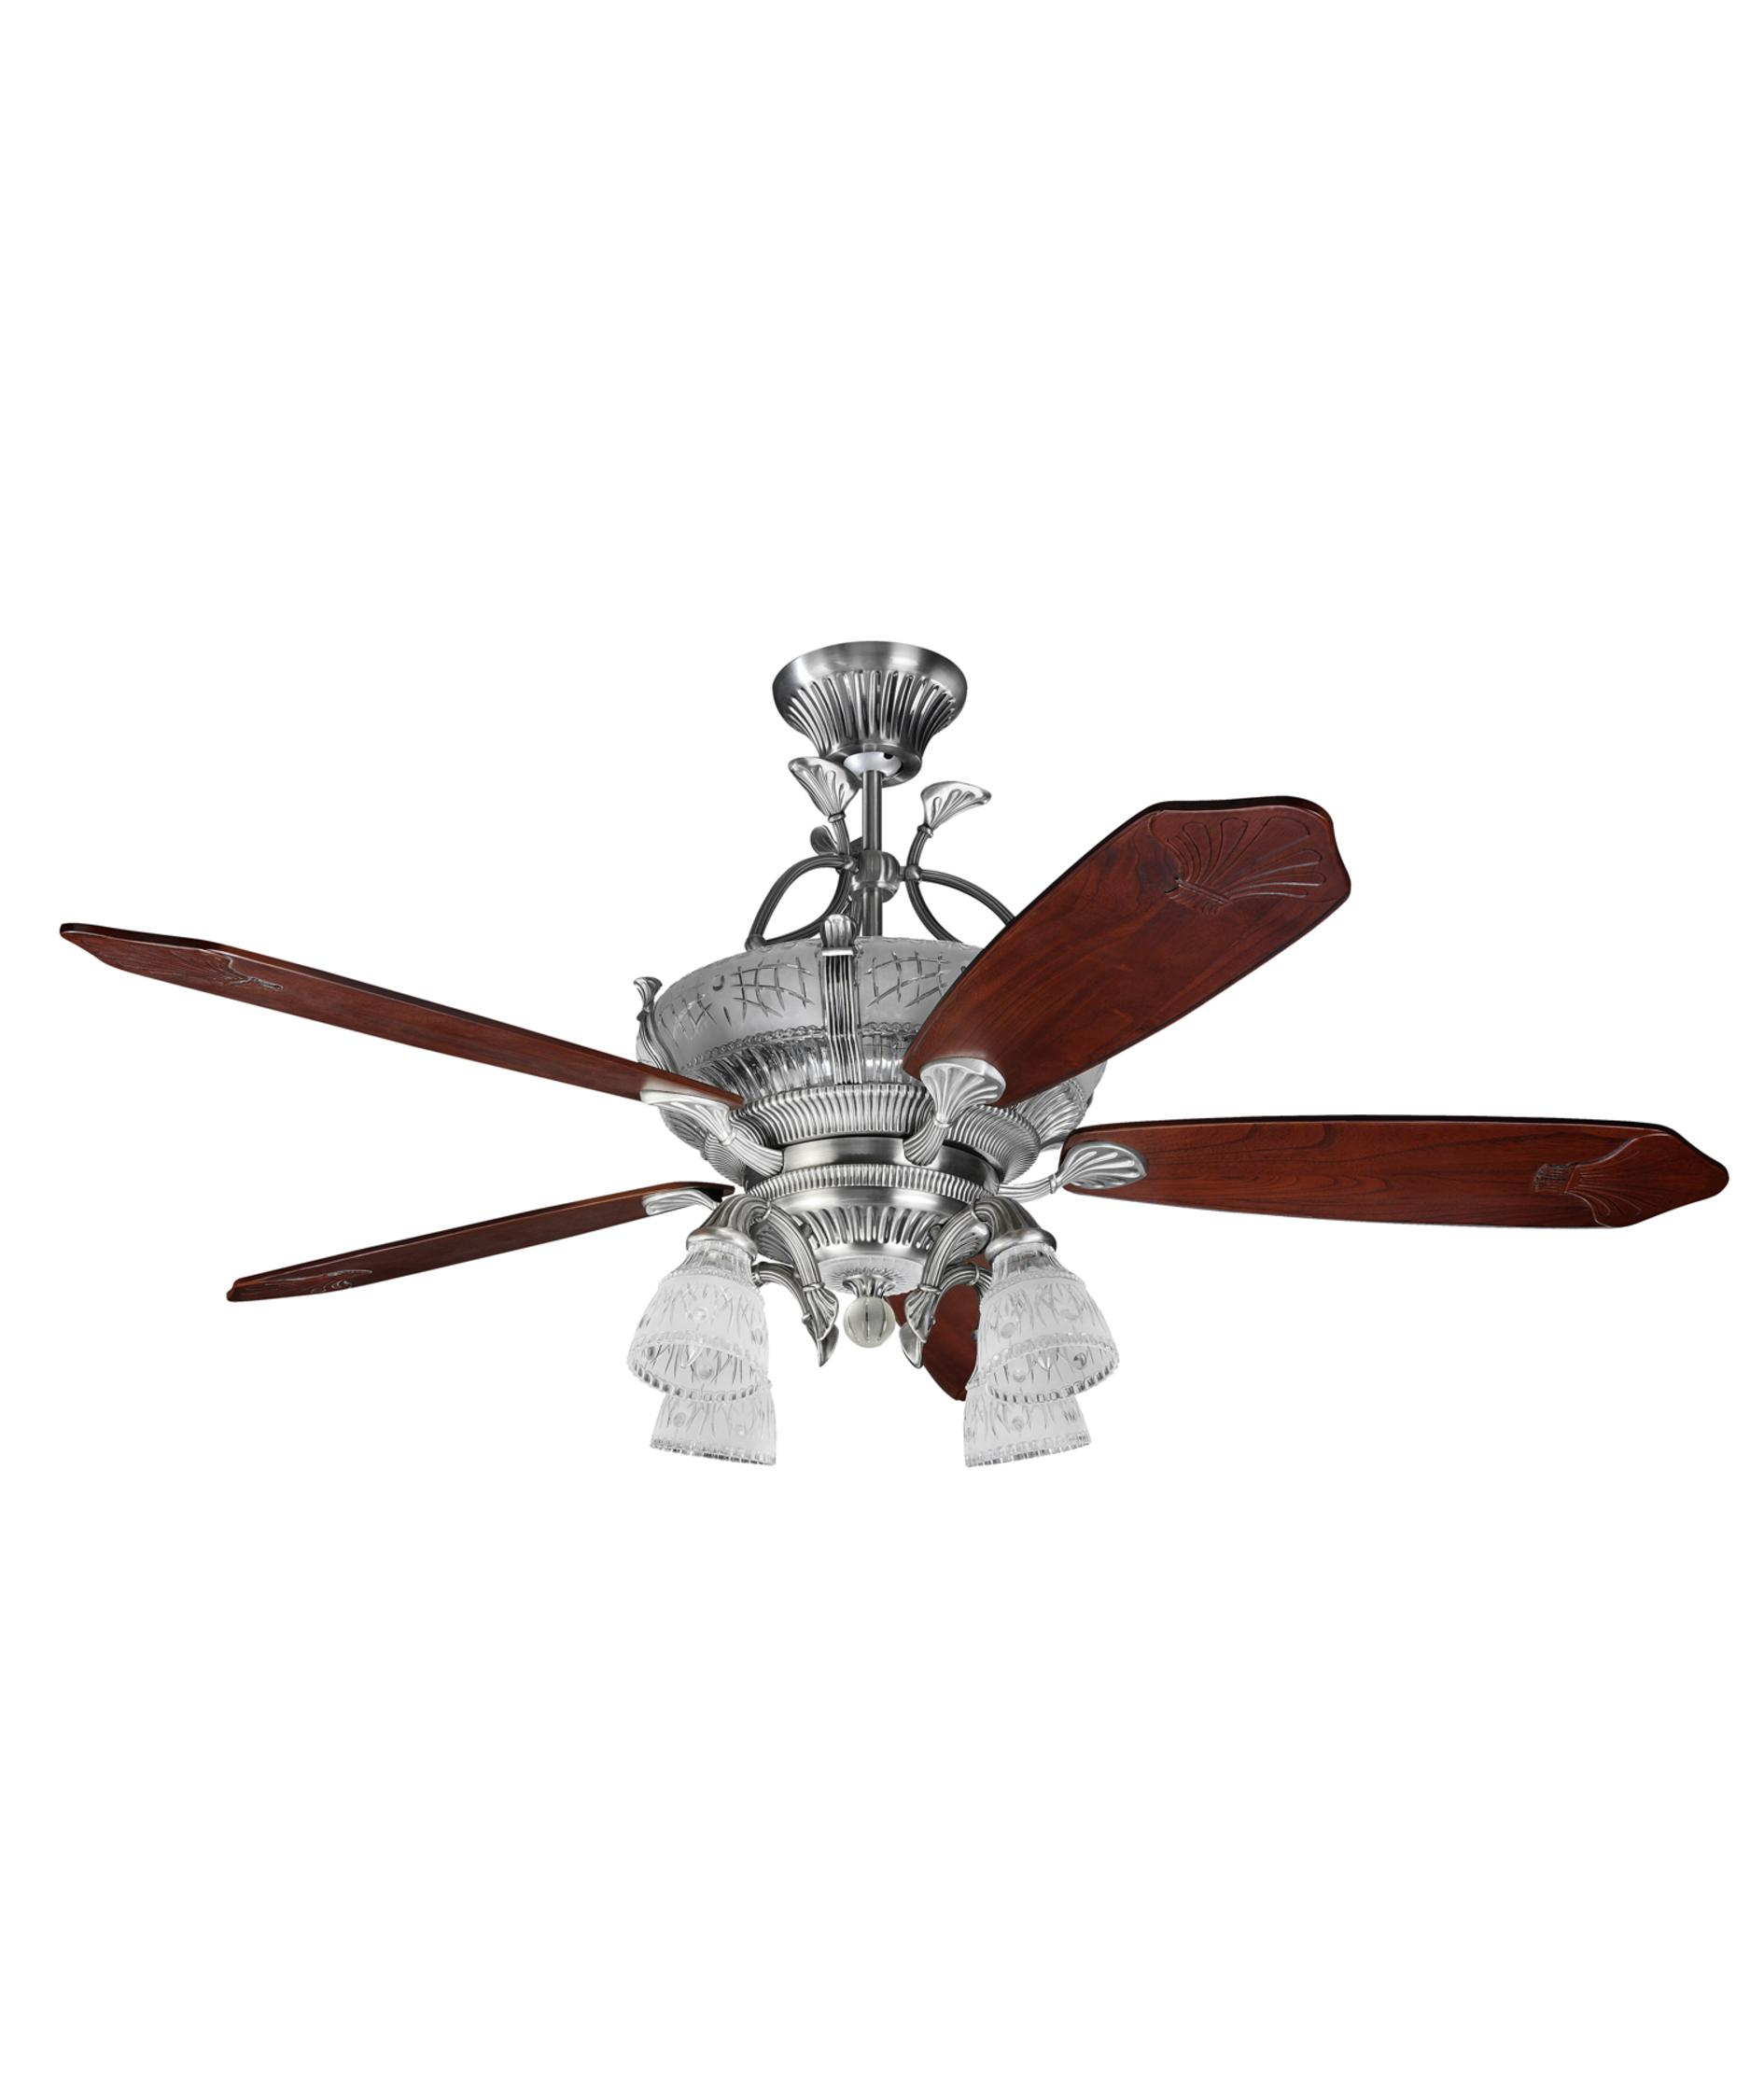 Murray Feiss Ceiling Fan Light Kit: Monte Carlo 5CRR66EP4 Crystoria 66 Inch Ceiling Fan With